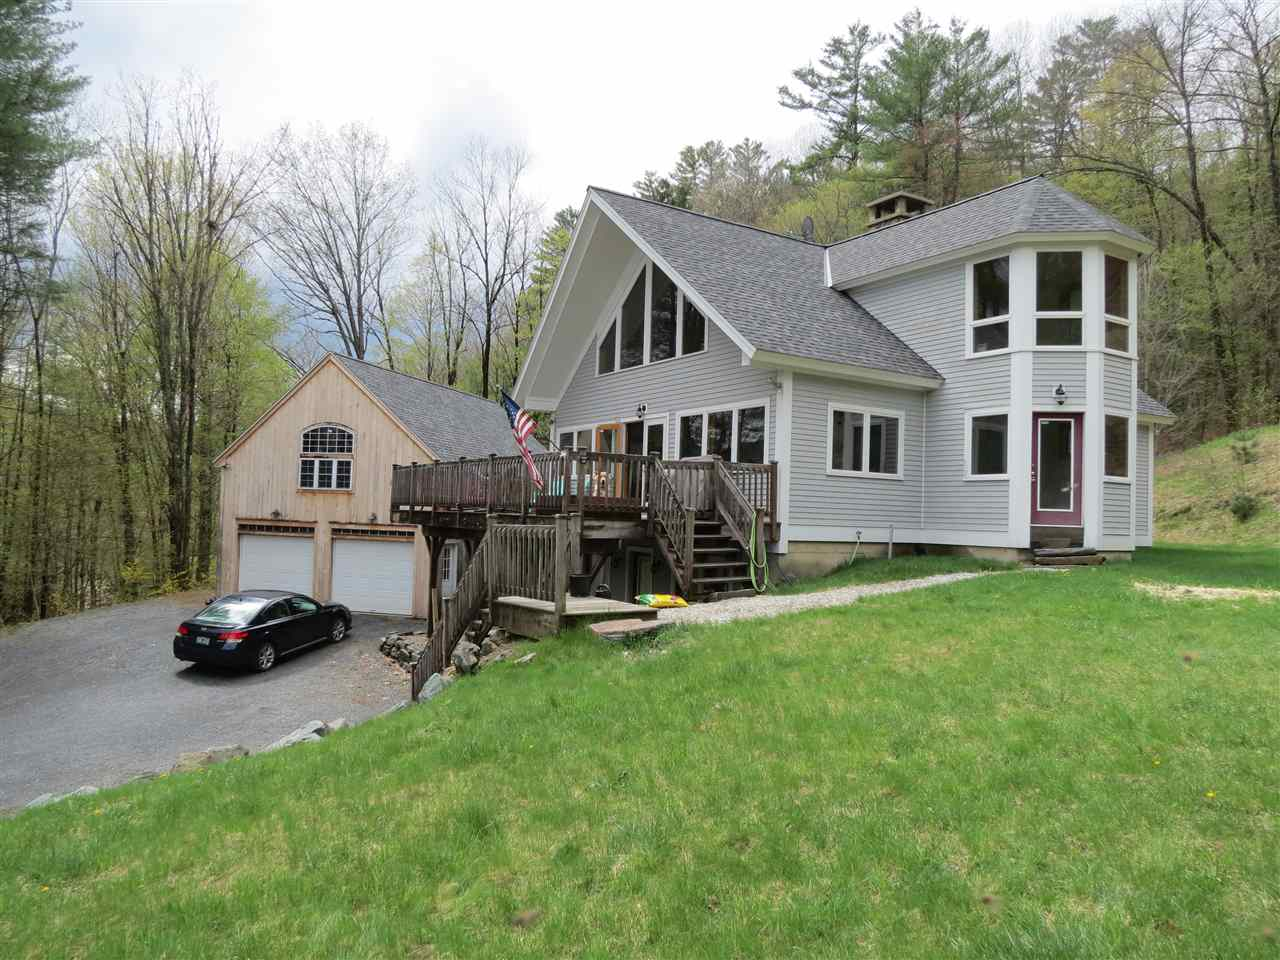 image of Springfield VT Home | sq.ft. 3265